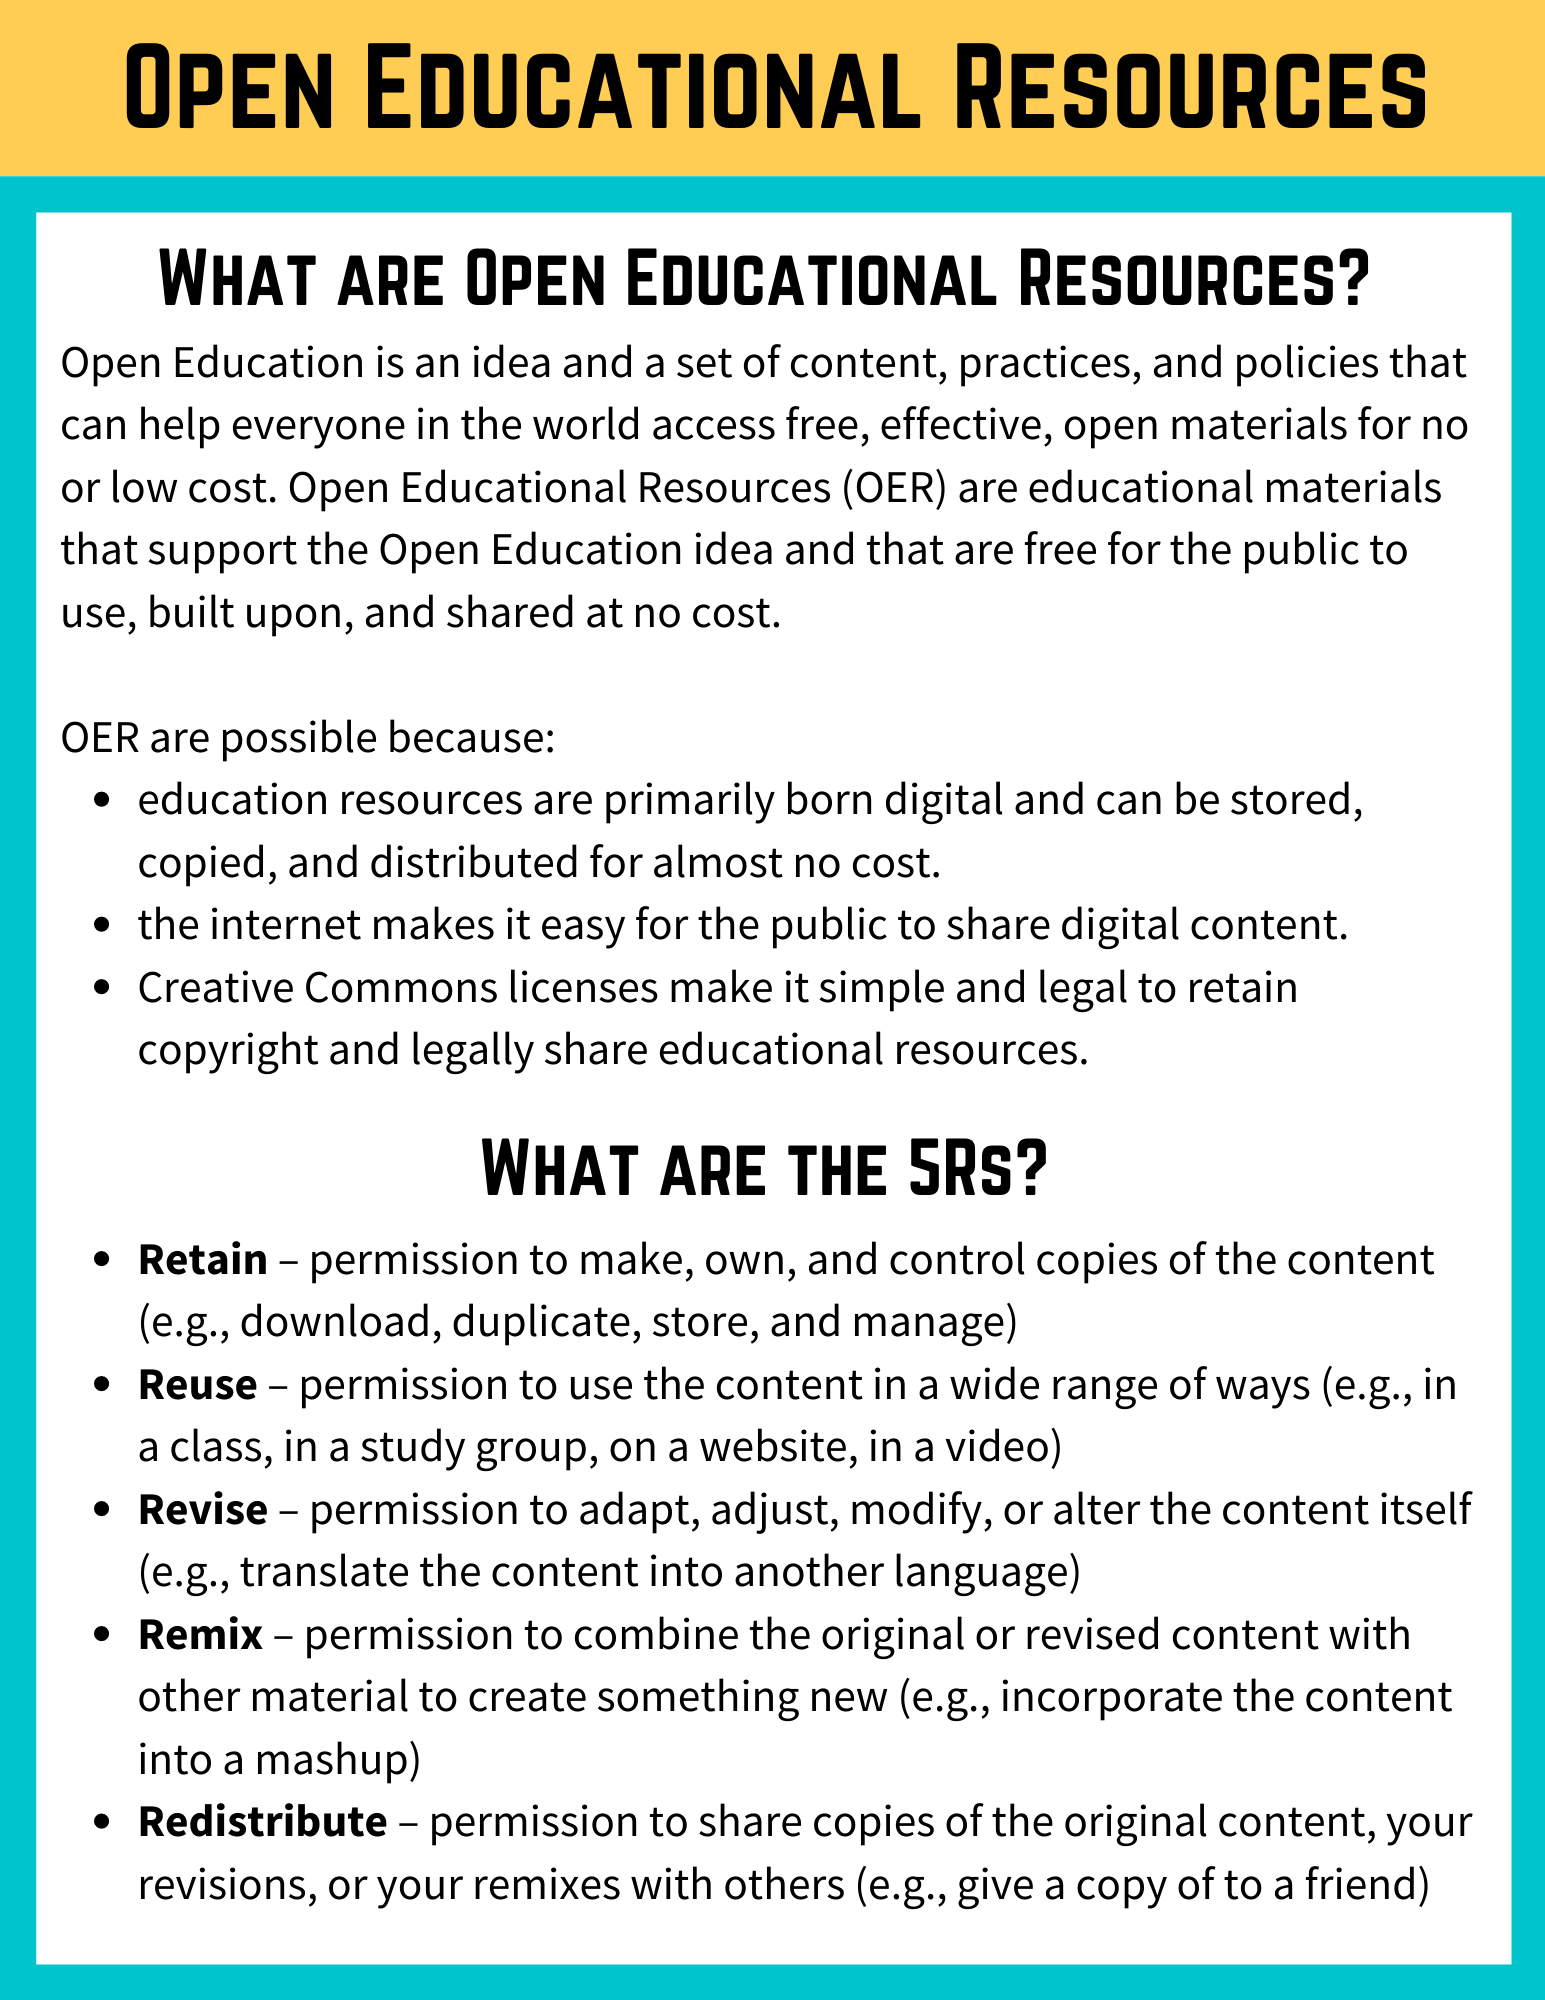 Open Access and OER page 6